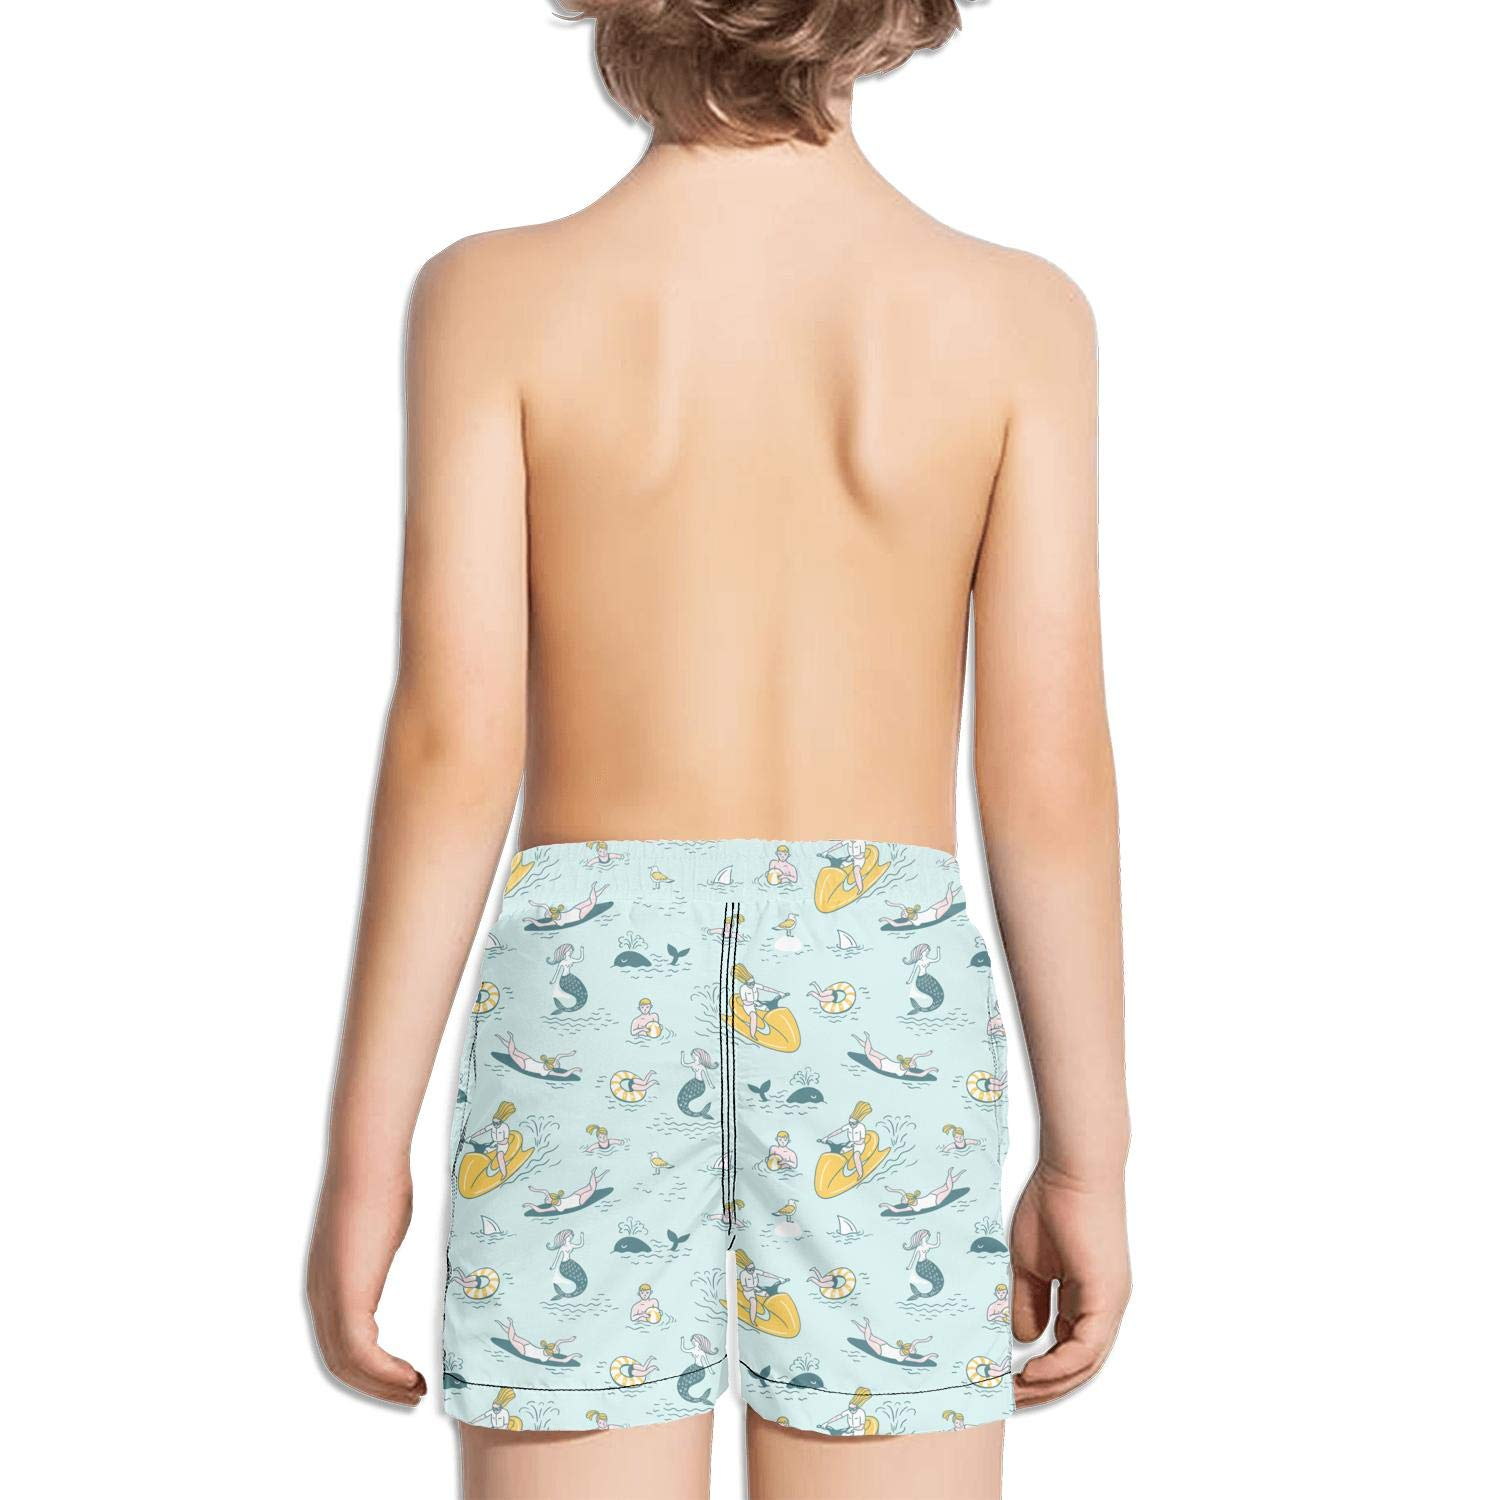 Boys Kids Surfing Hawaii Beach Waves surfboard2 Quick Dry Beach Swim Trunk Fully Lined Swimsuit Beach Shorts with Drawstring